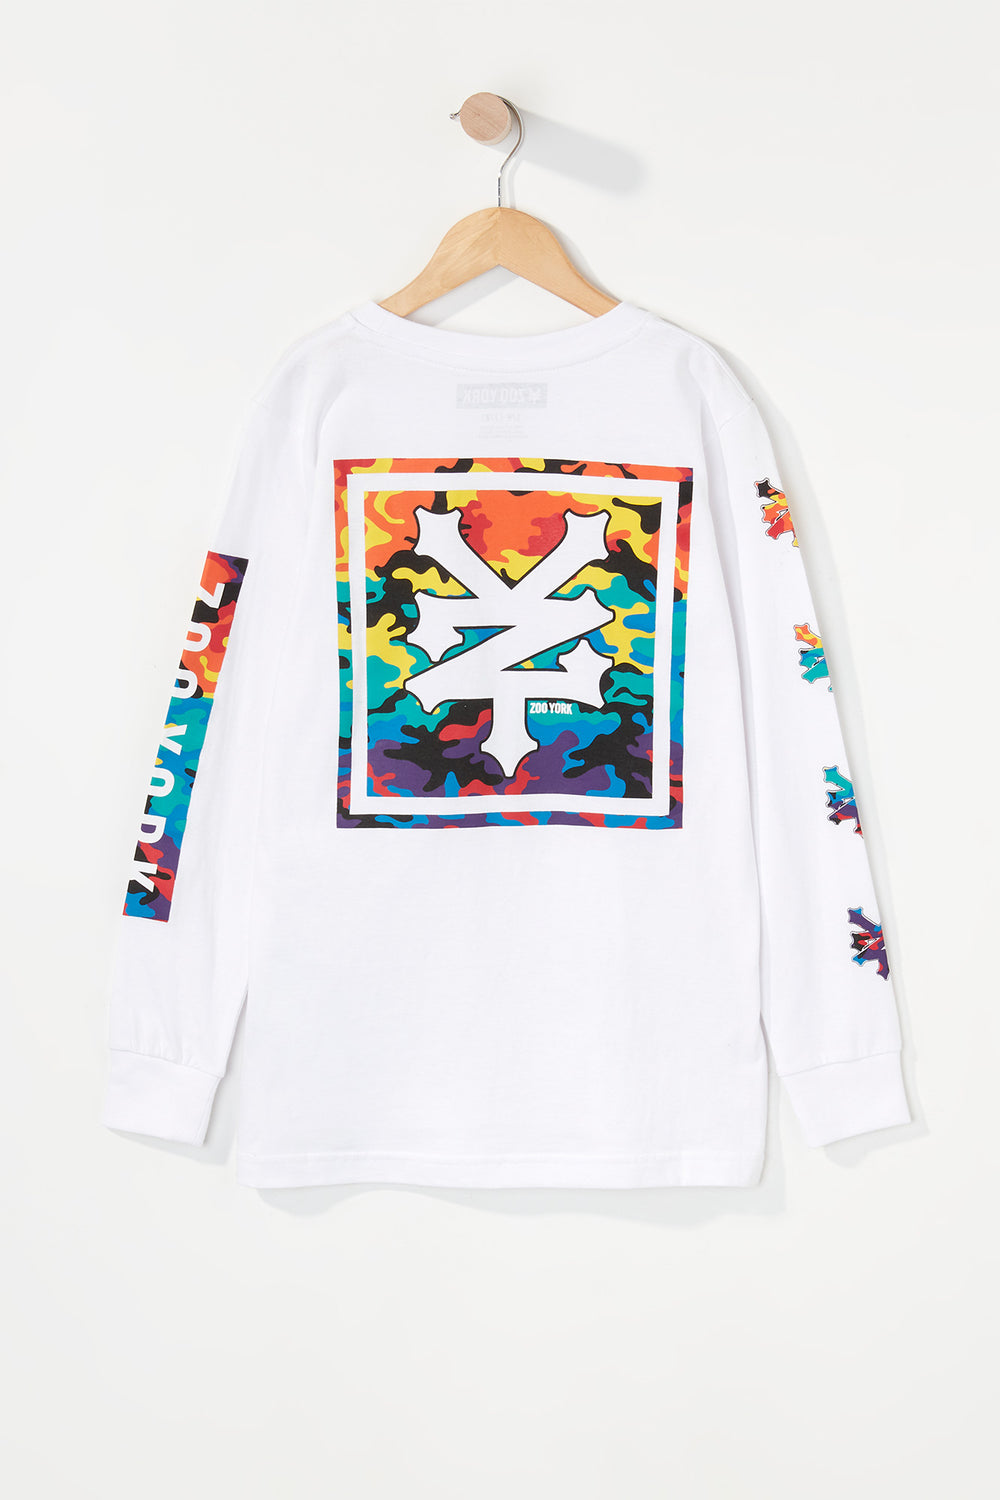 Zoo York Boys Rainbow Camo Logo Long Sleeve Shirt White